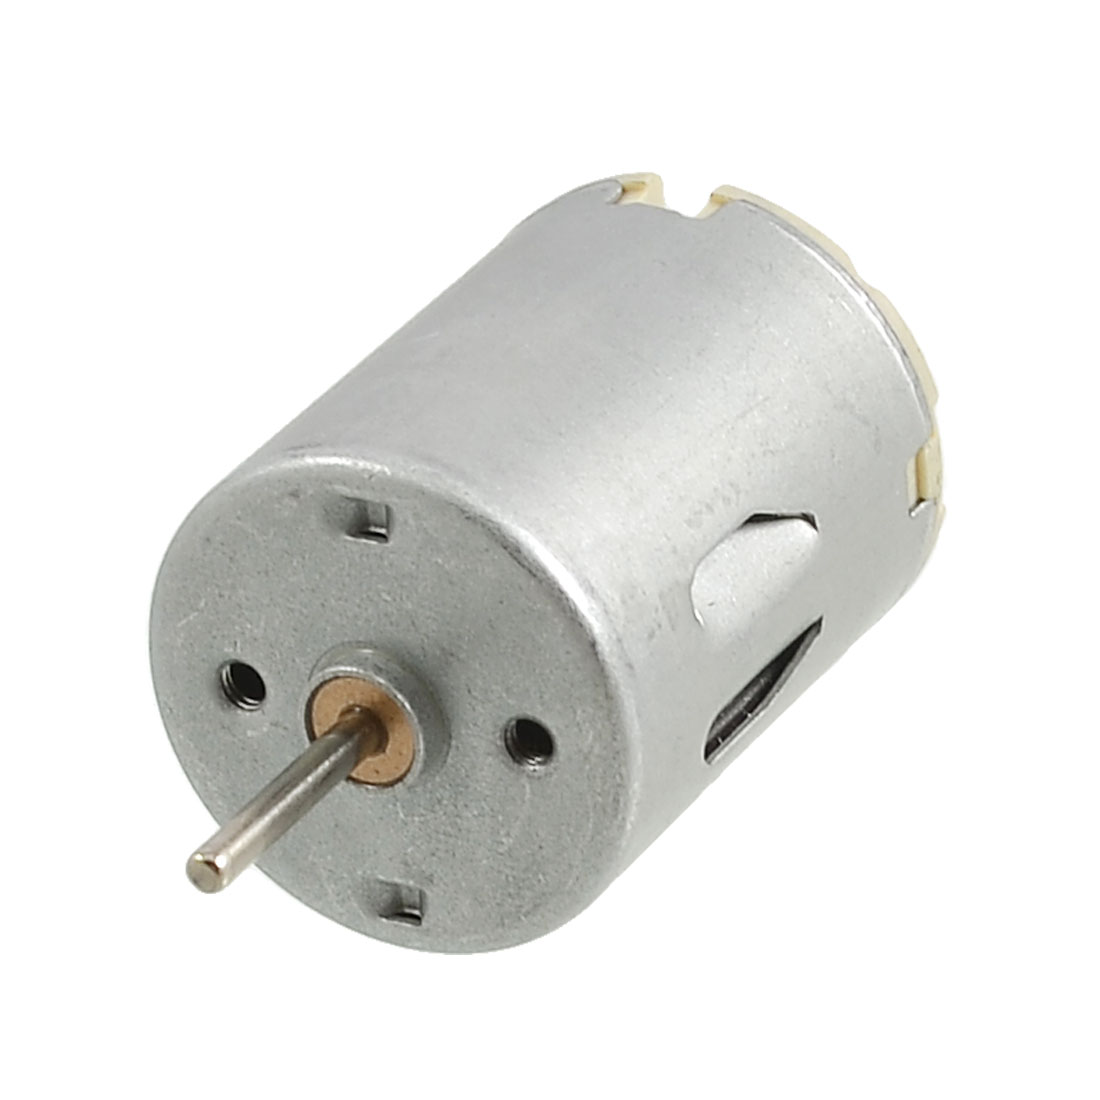 DC 5V 4350RPM 0.04A Electric Small Motor for USB Fans